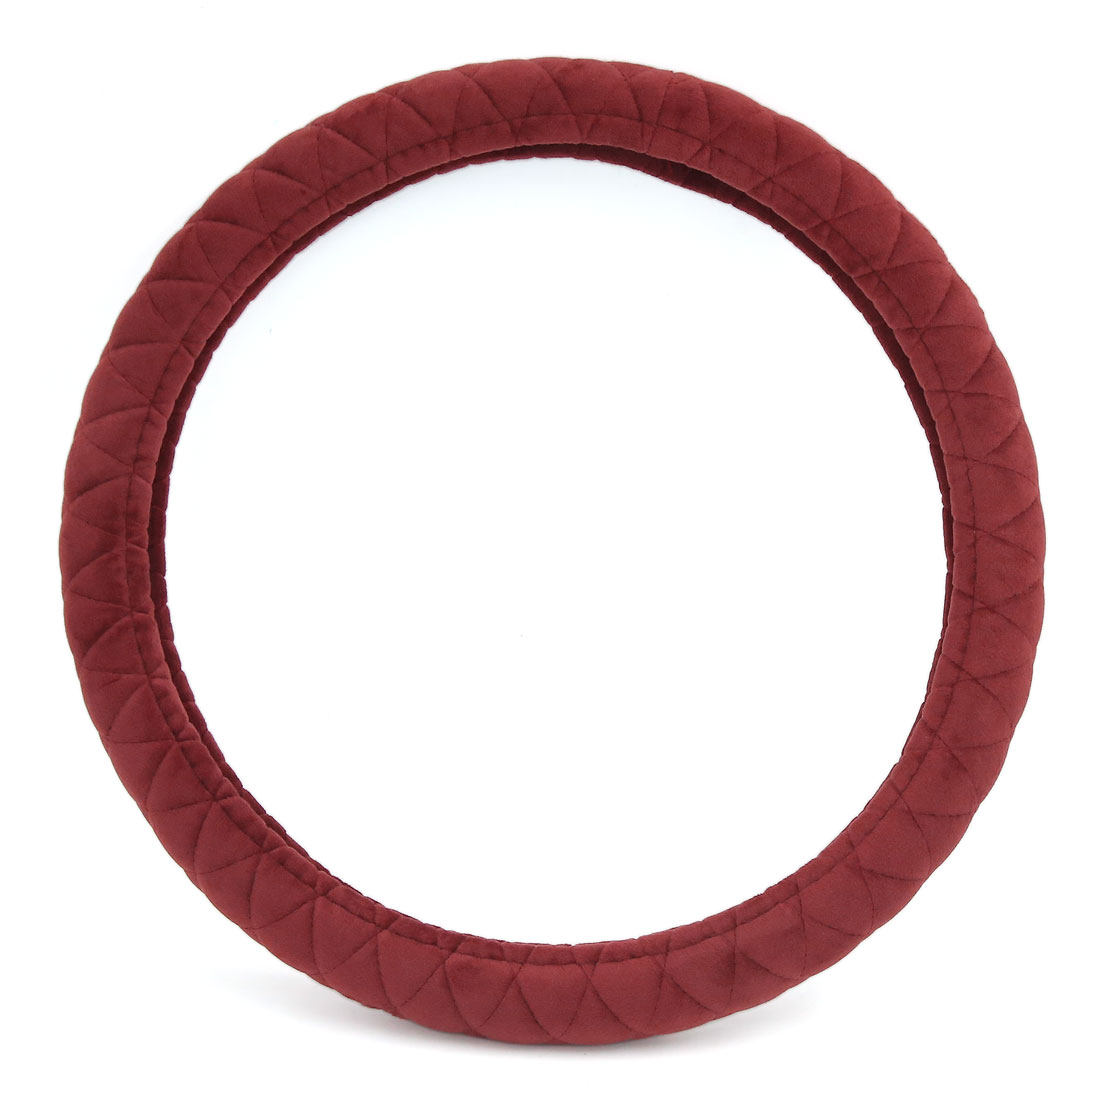 Winter Warm Soft Short Plush Fuzzy Car Steering Wheel Cover 38cm Dia Burgundy